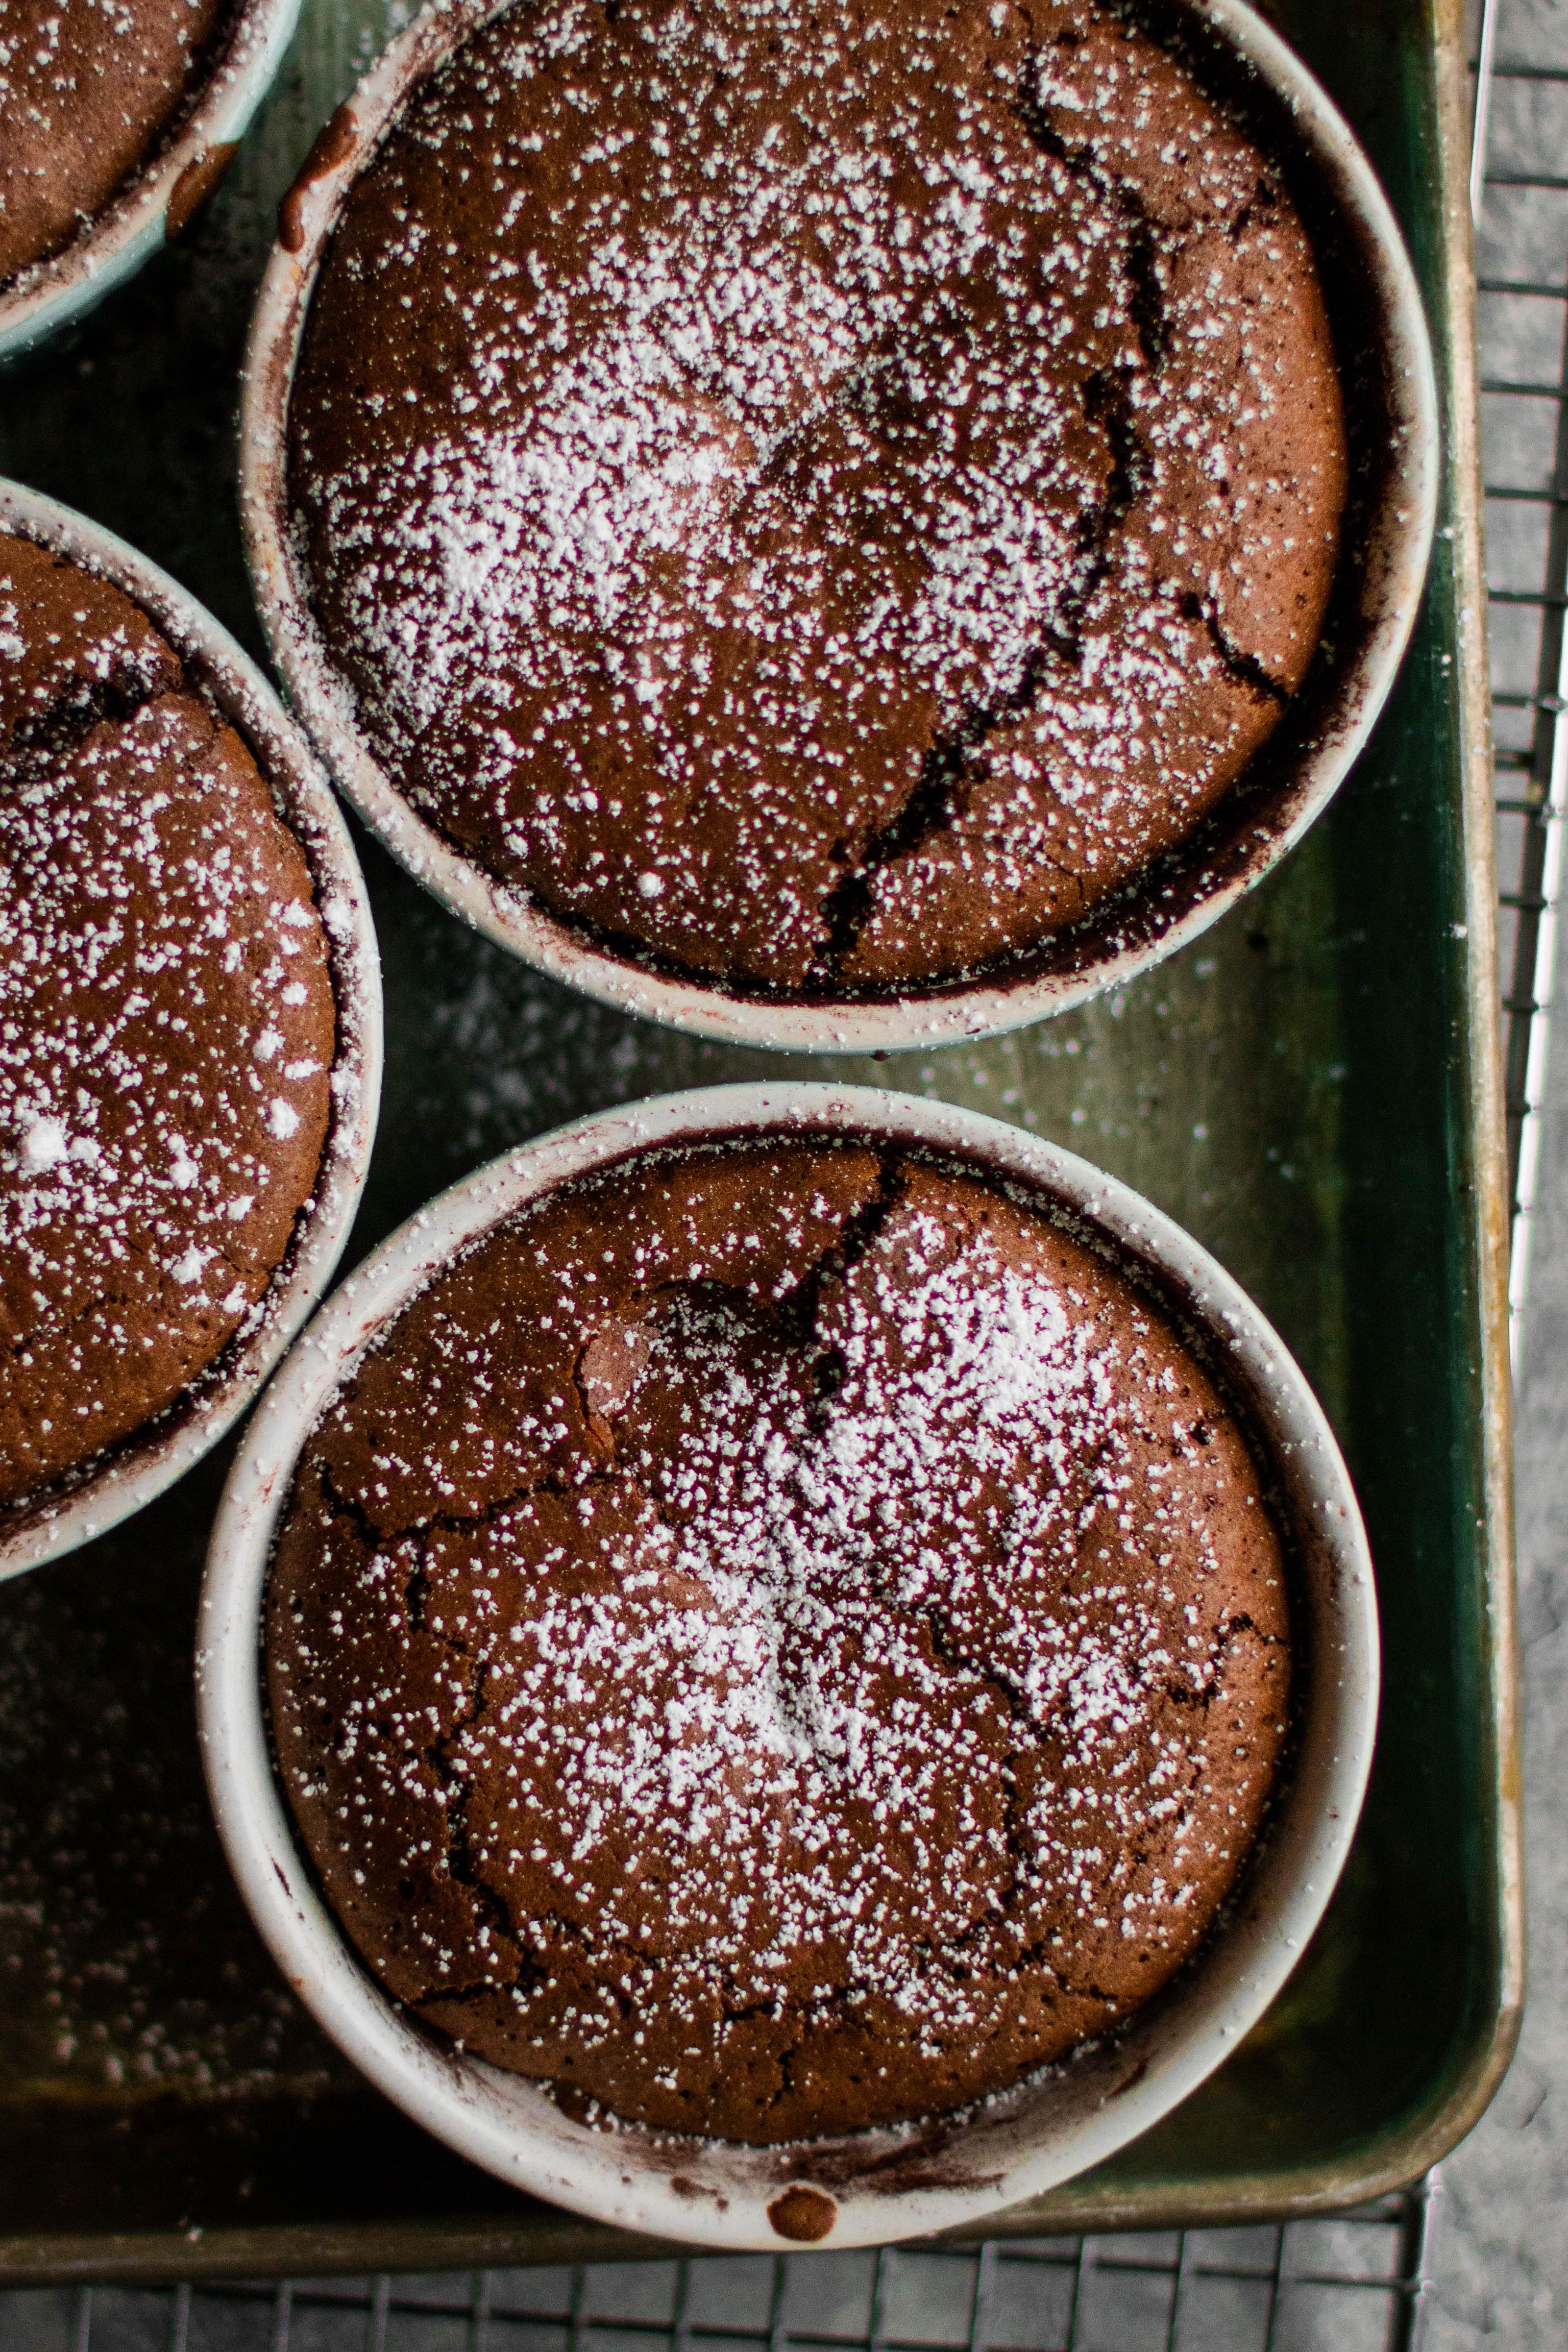 Gooey Chocolate Hazelnut Filled Chocolate Cakes By Jennygoycochea Quick Easy Recipe The Feedfeed